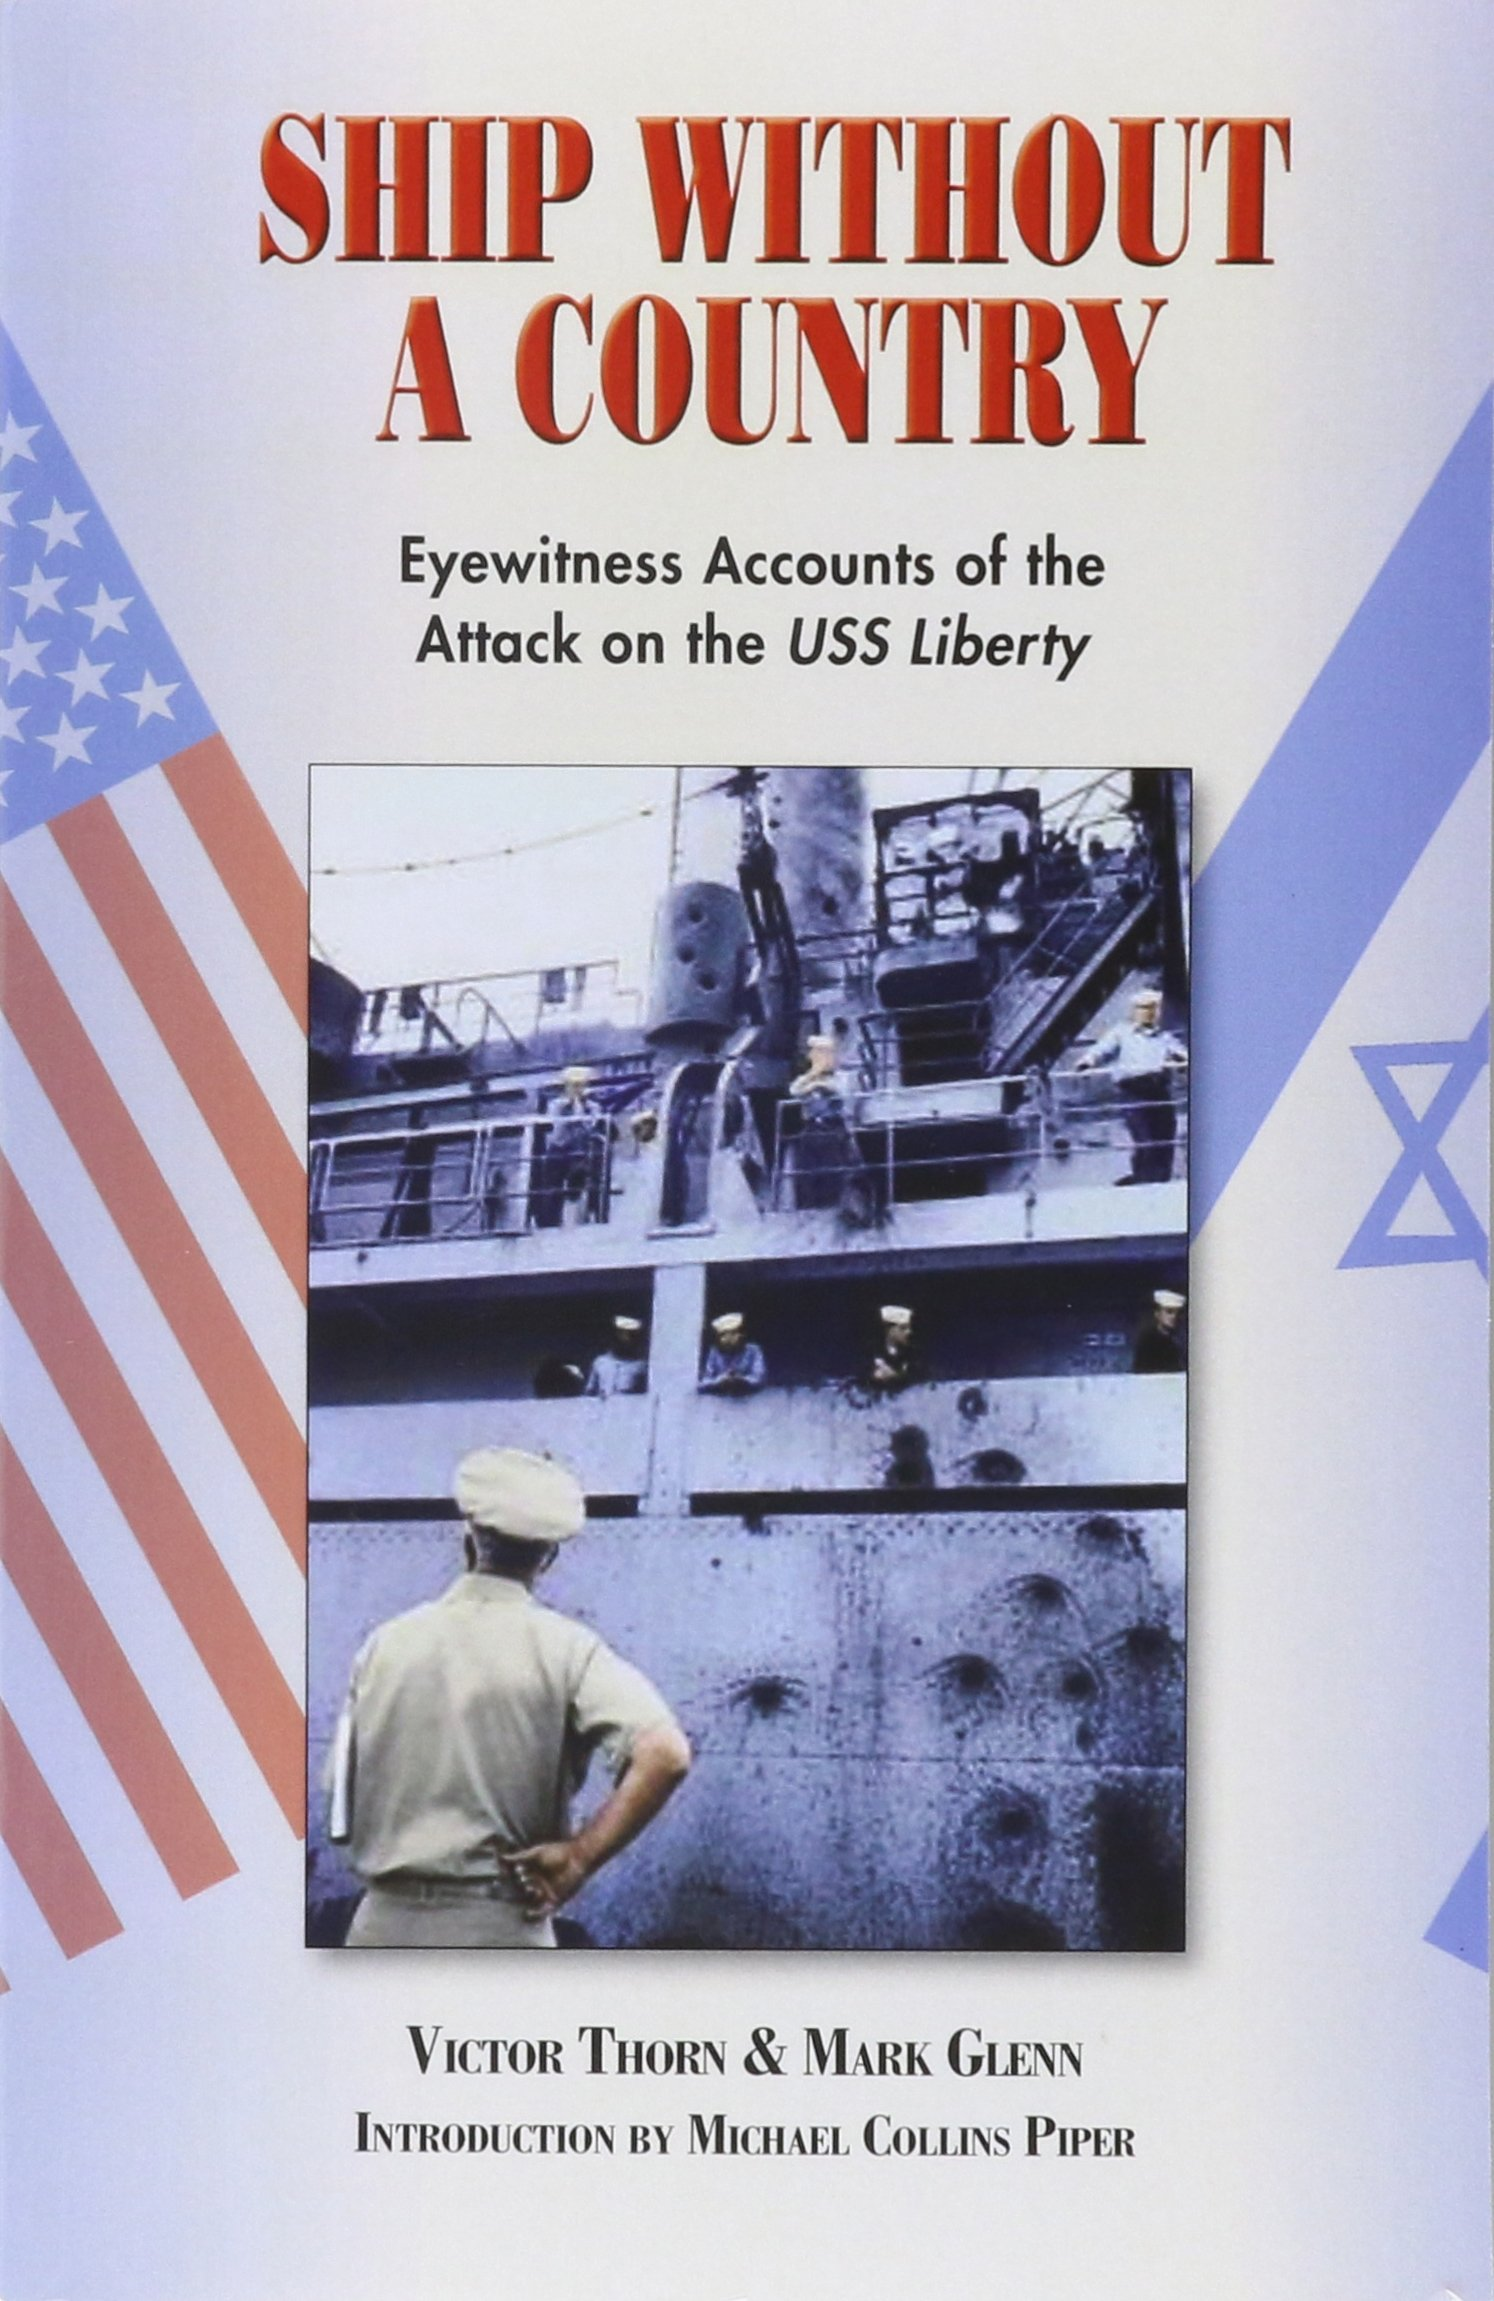 Ship without a country eyewitness accounts of the attack on the uss ship without a country eyewitness accounts of the attack on the uss liberty victor thorn mark glenn 9780981808666 amazon books fandeluxe Gallery